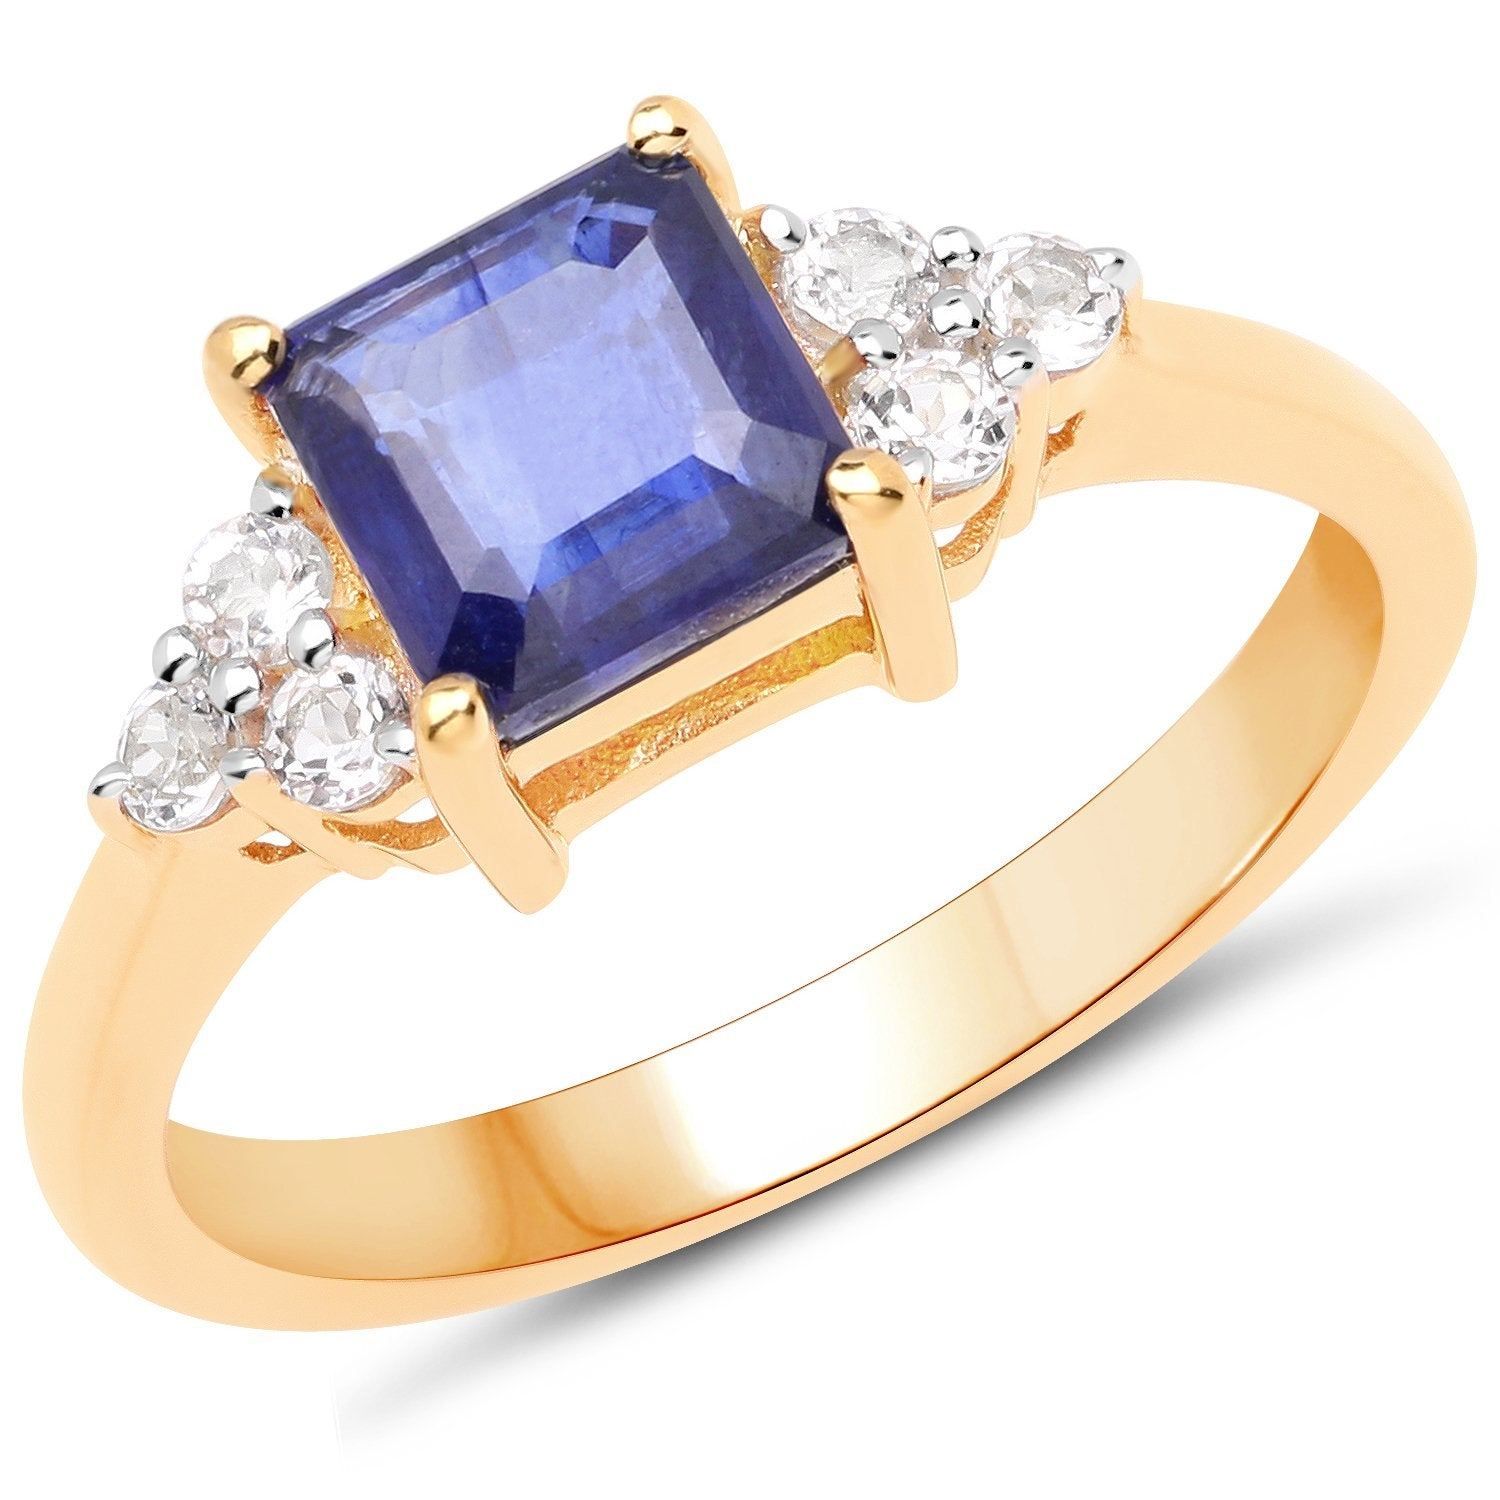 LoveHuang 1.79 Carats Genuine Blue Sapphire and White Topaz Square Ring Solid .925 Sterling Silver With 18KT Yellow Gold Plating